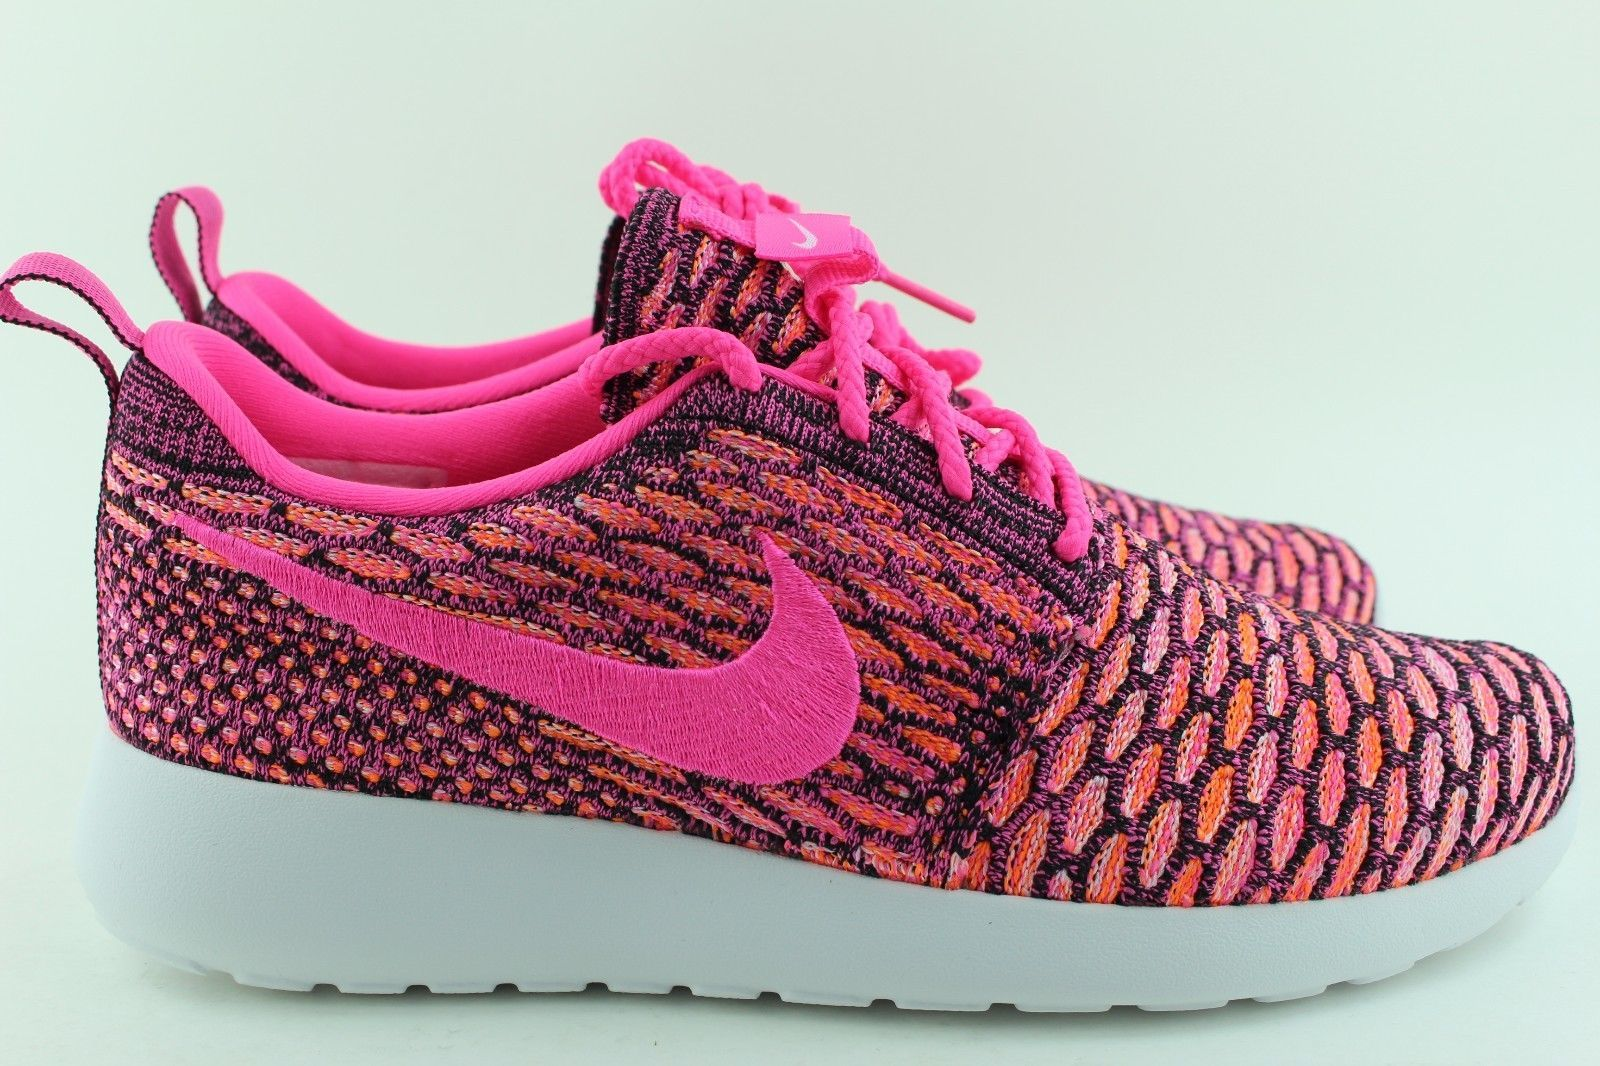 NIKE ROSHERUN FLYKNIT WOMAN SIZE 6.0 PINK POW NEW RARE AUTHENTIC